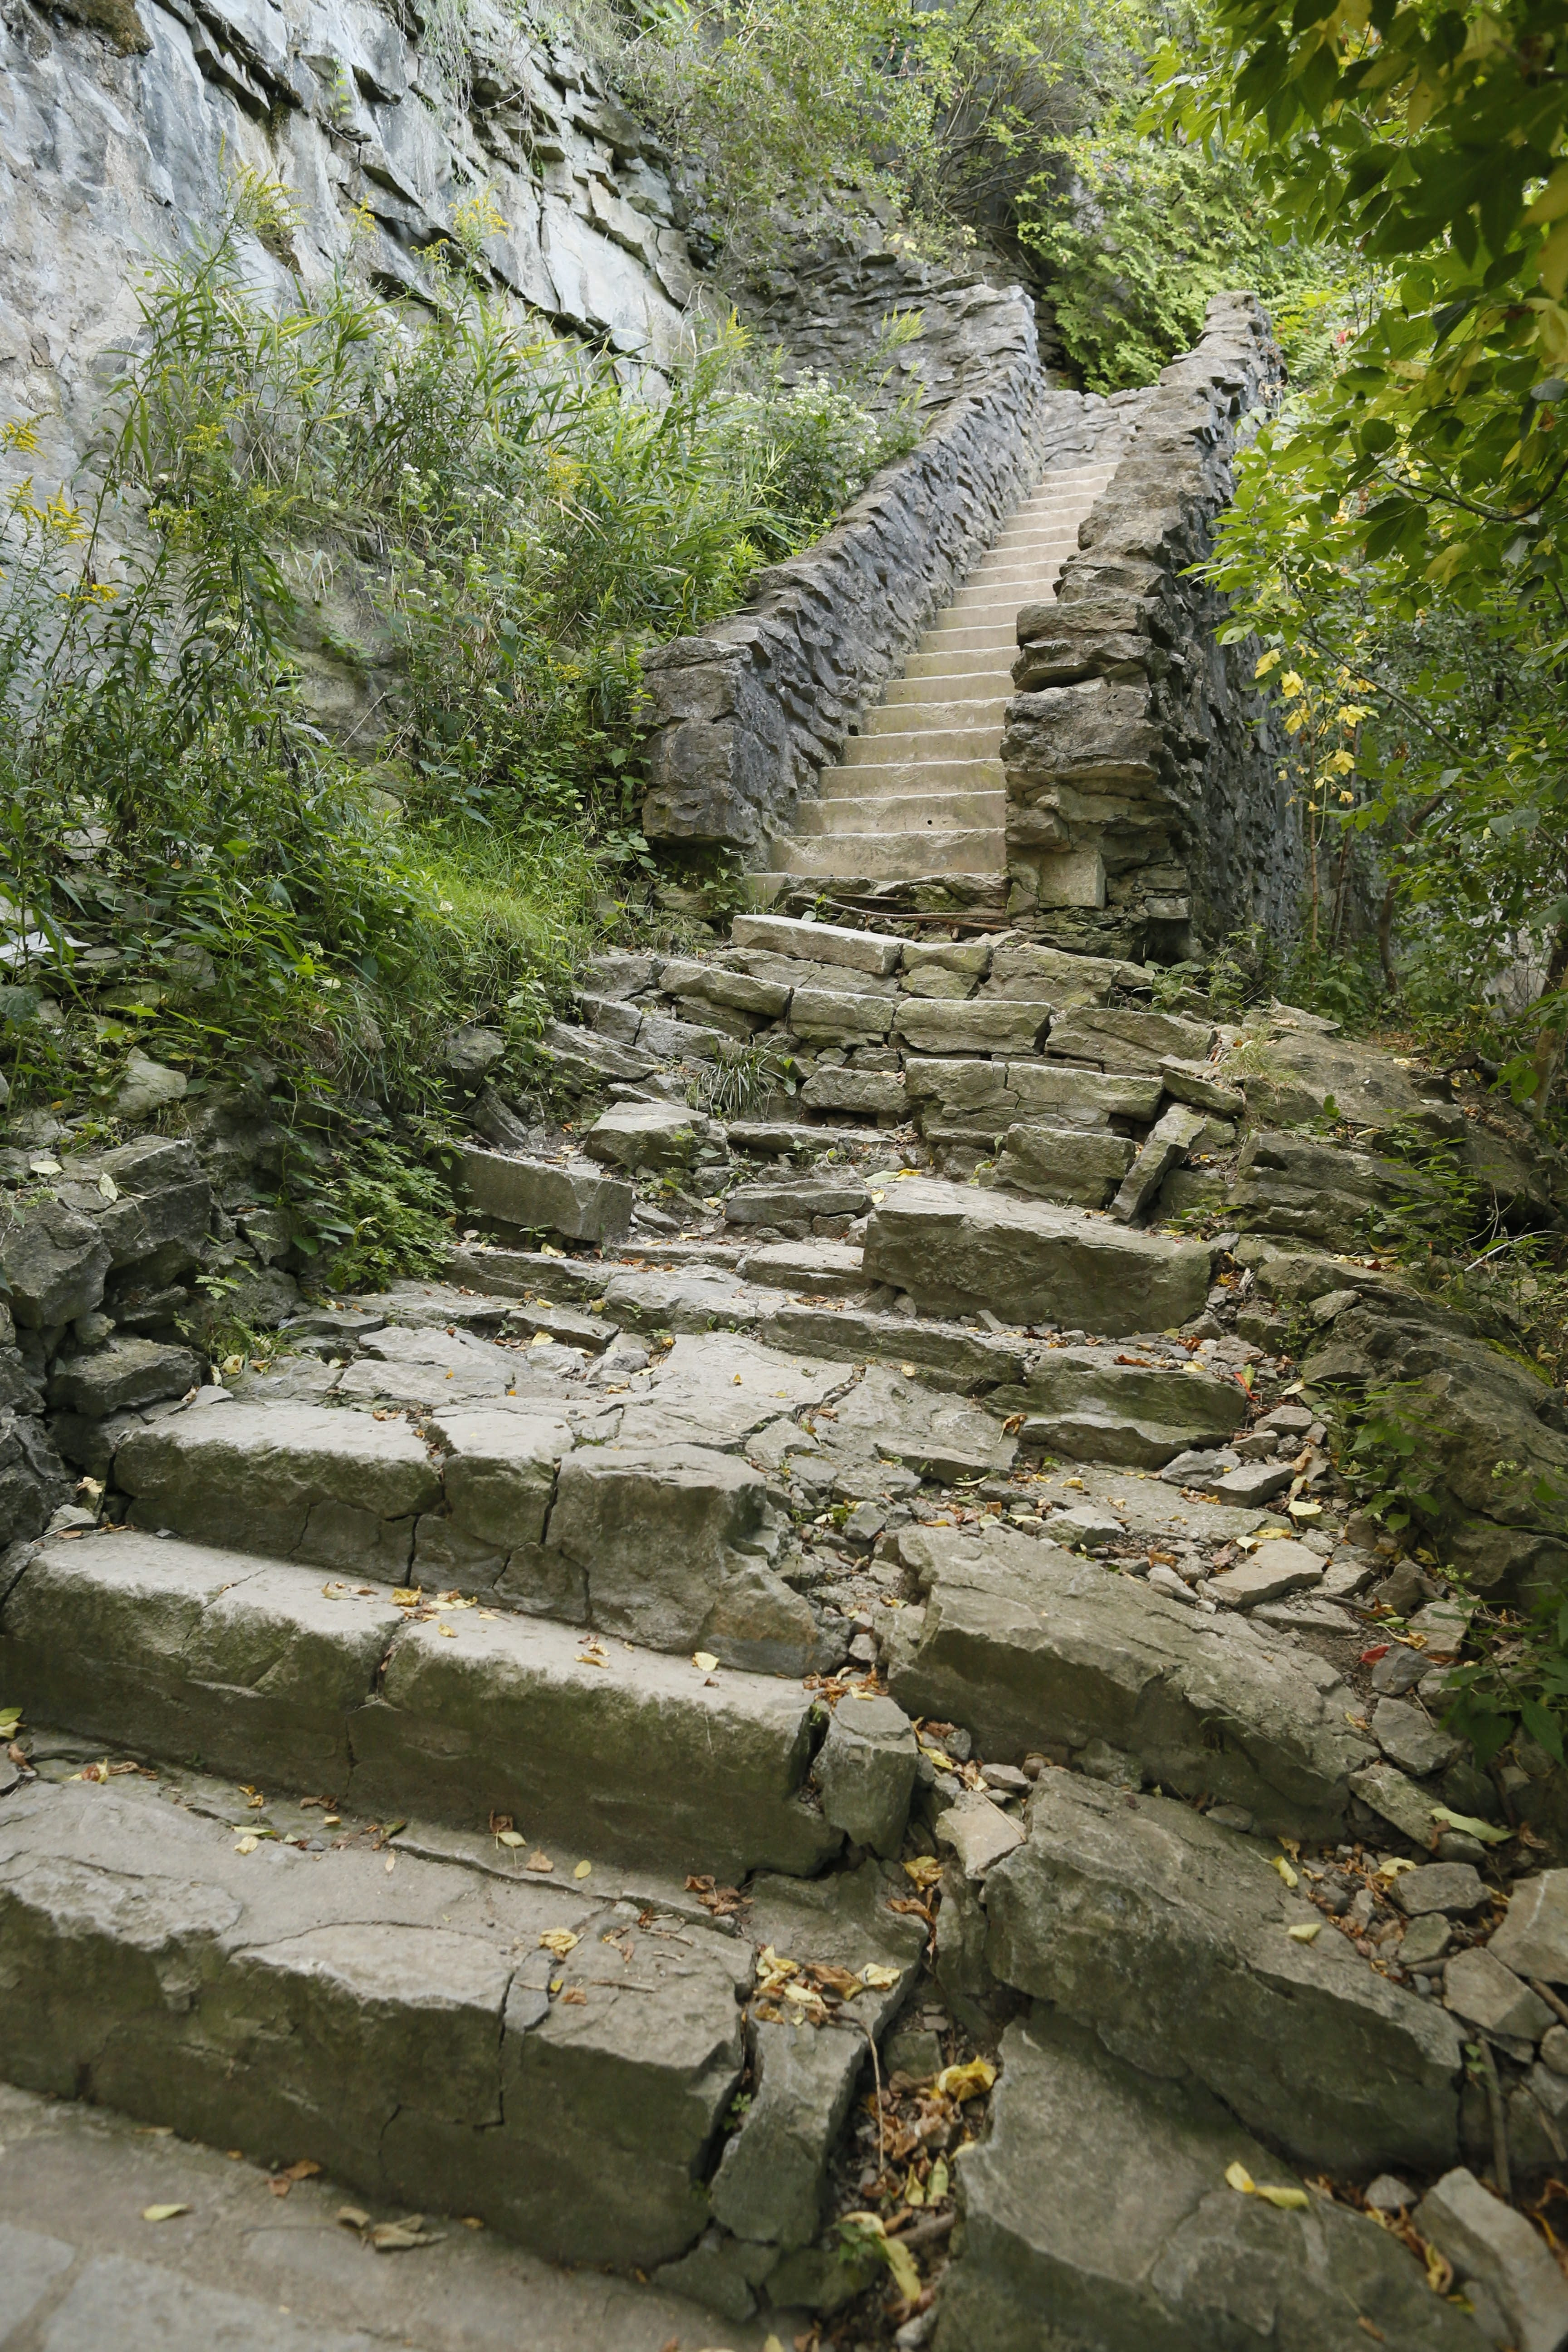 The stairs down into the Niagara Gorge trail at Whirlpool State Park are crumbling and in some places listing downhill, Thursday, Sept. 10, 2015.  (Derek Gee/Buffalo News)